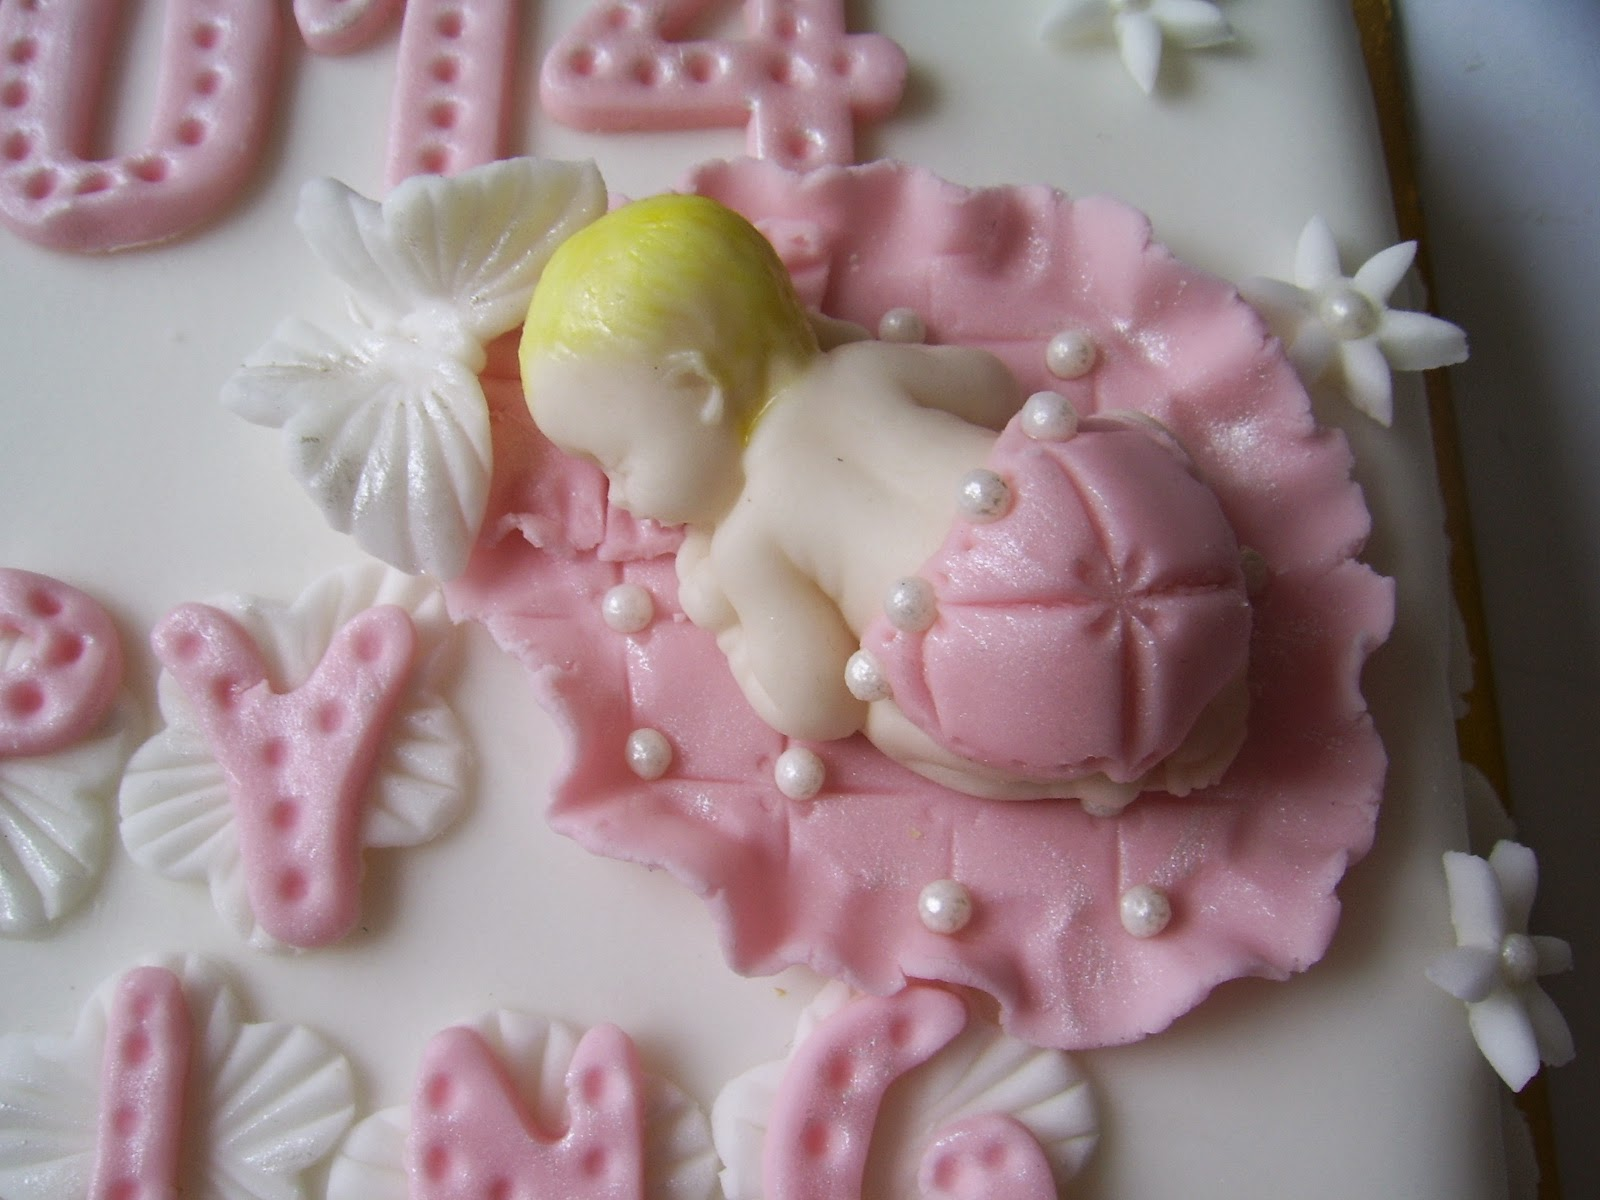 fondant icing Delia's fondant icing recipe this is for those who like a softer icing than royal icing, but prefer to have a homemade version.